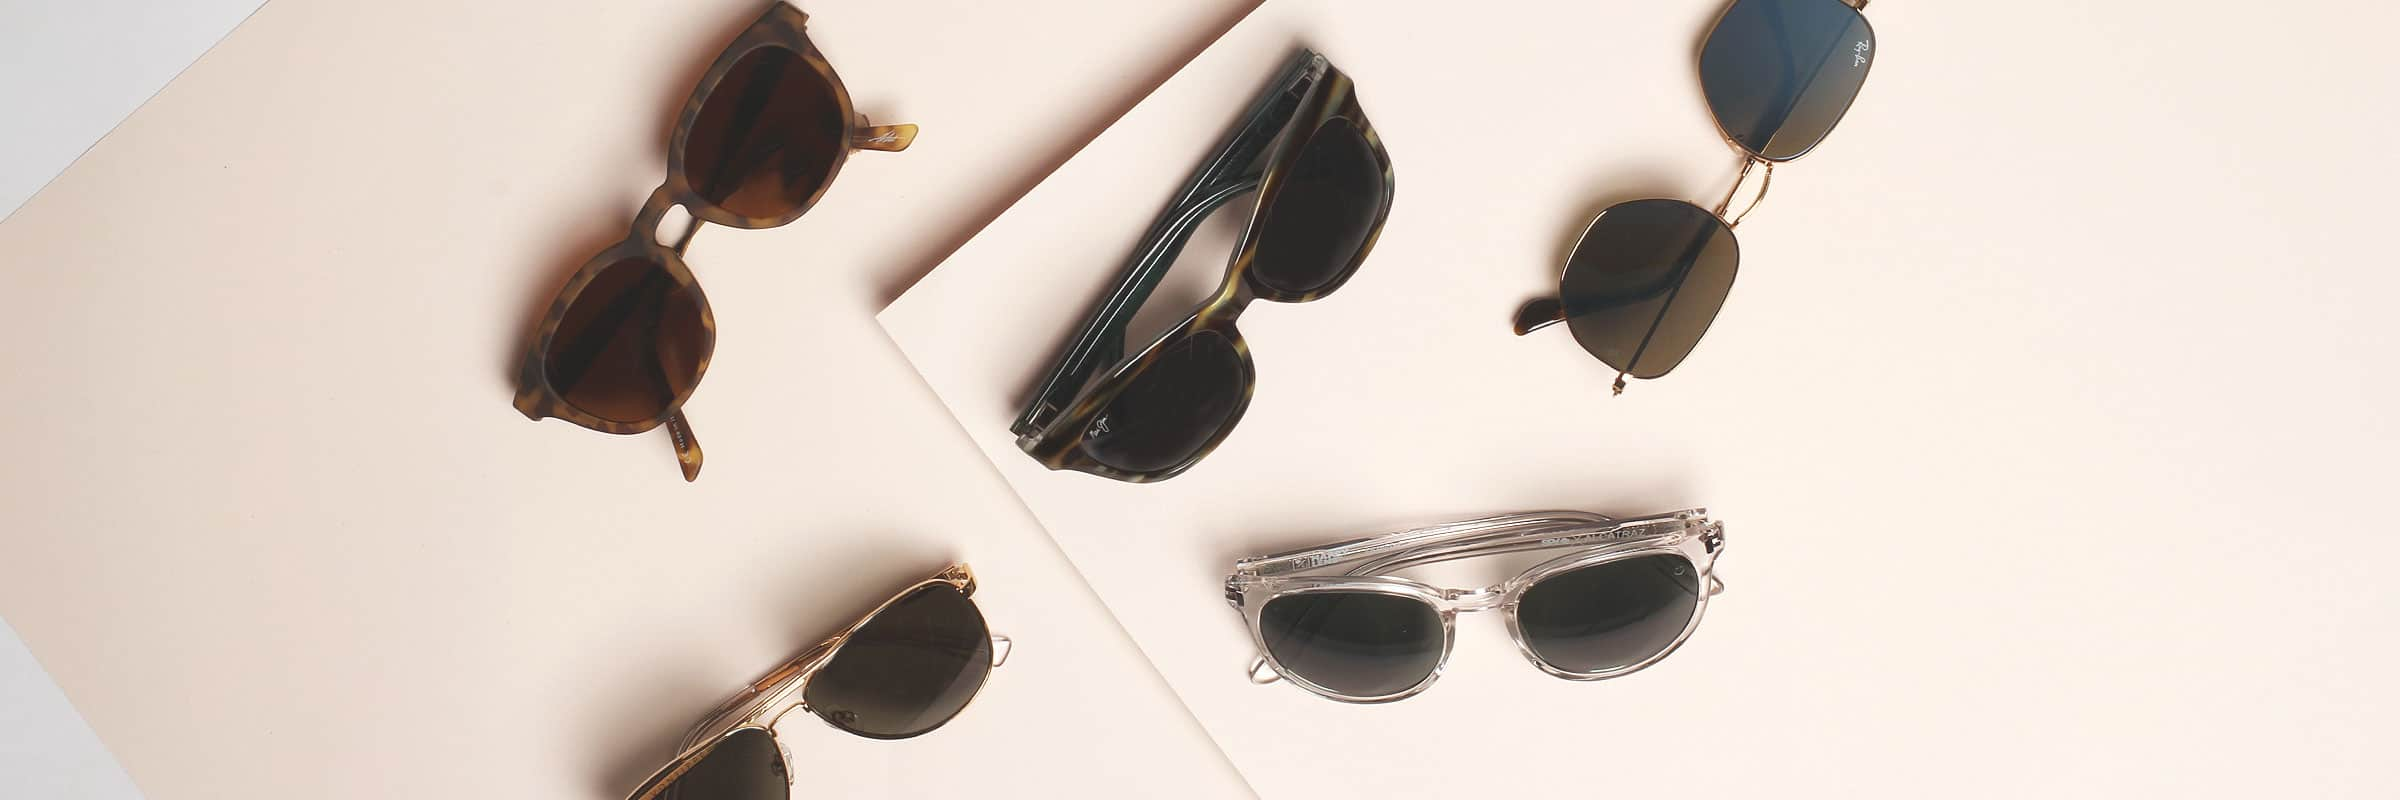 9d7c2efd2b Top 5 Stylish Sunglasses You Need This Summer